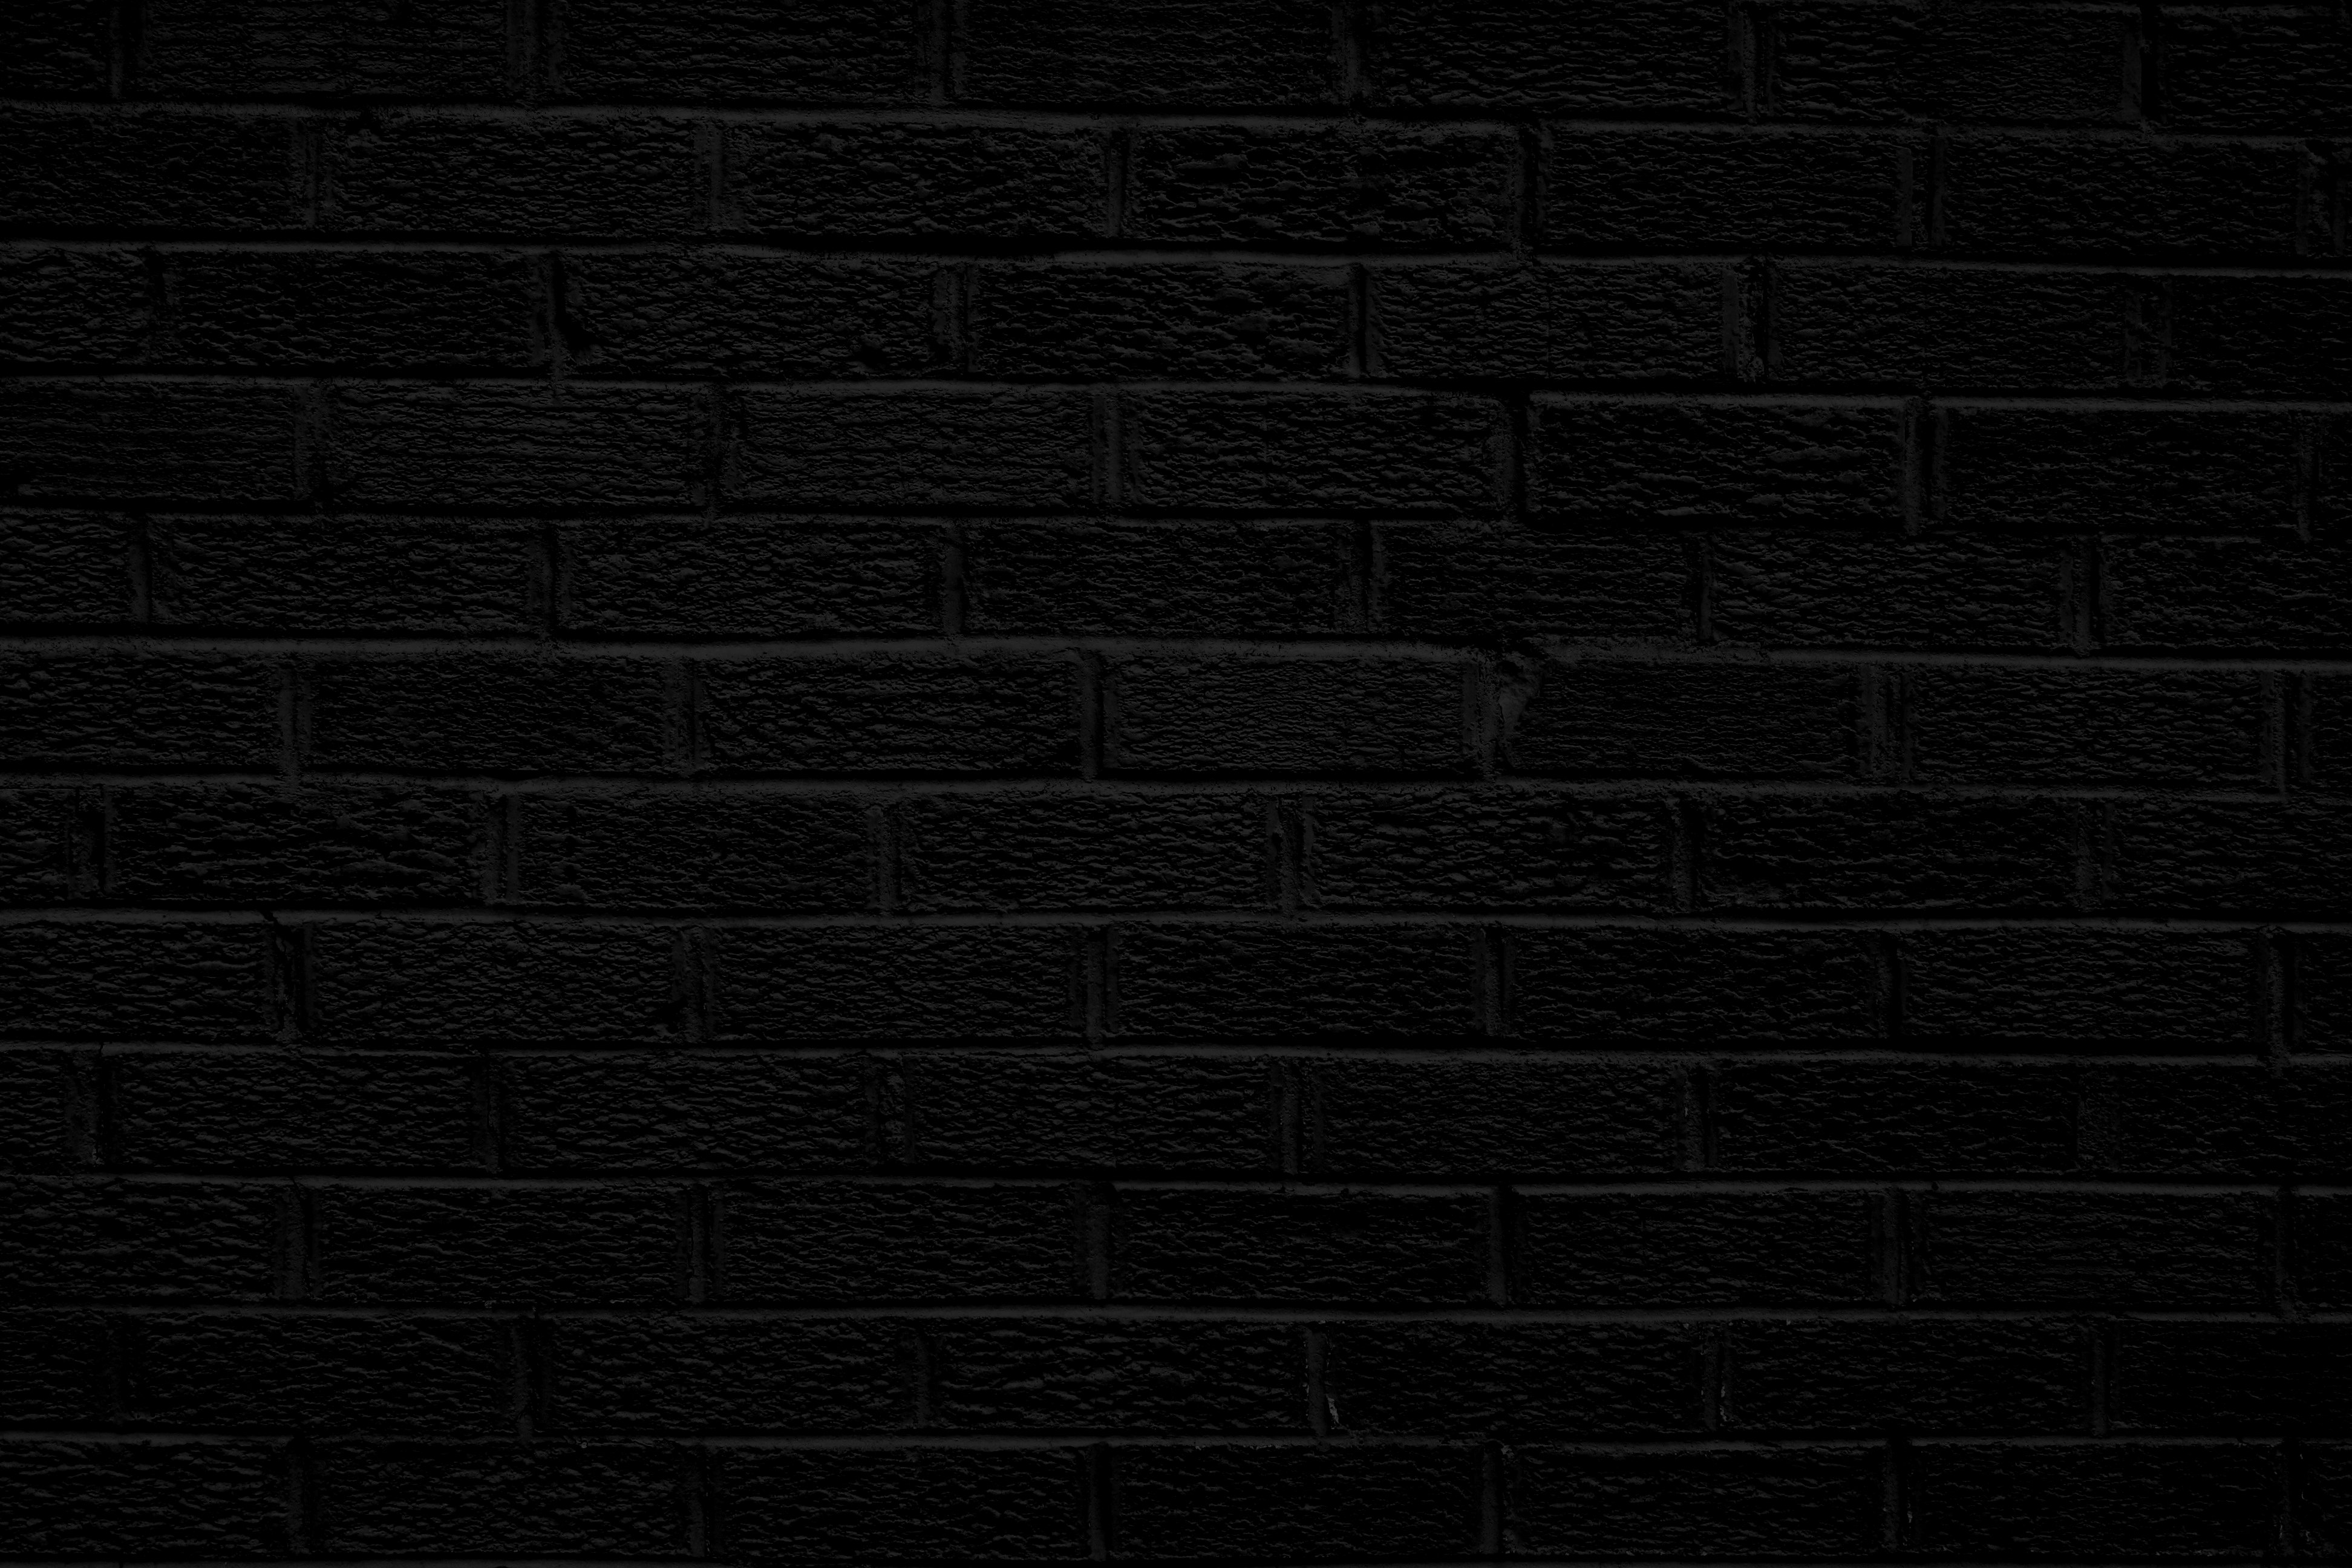 Black Wall Texture And Black Wall Texture